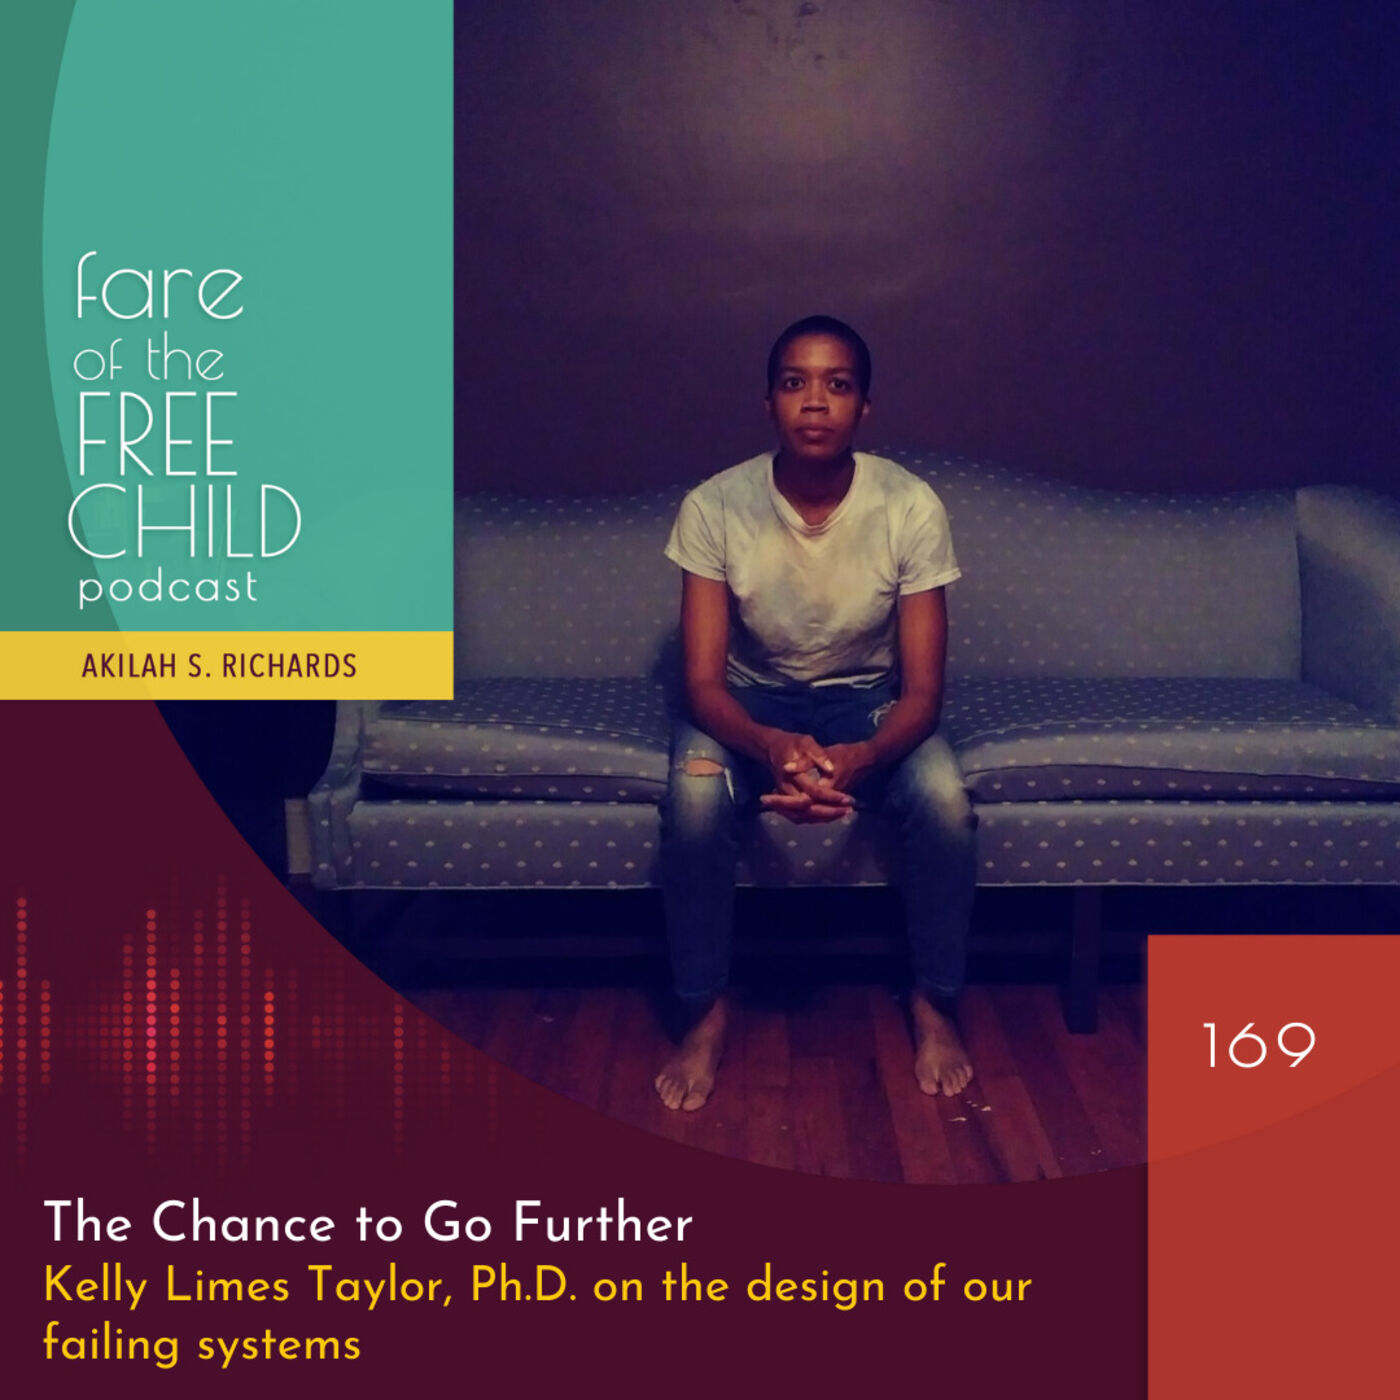 EP 169: The Chance to Go Further